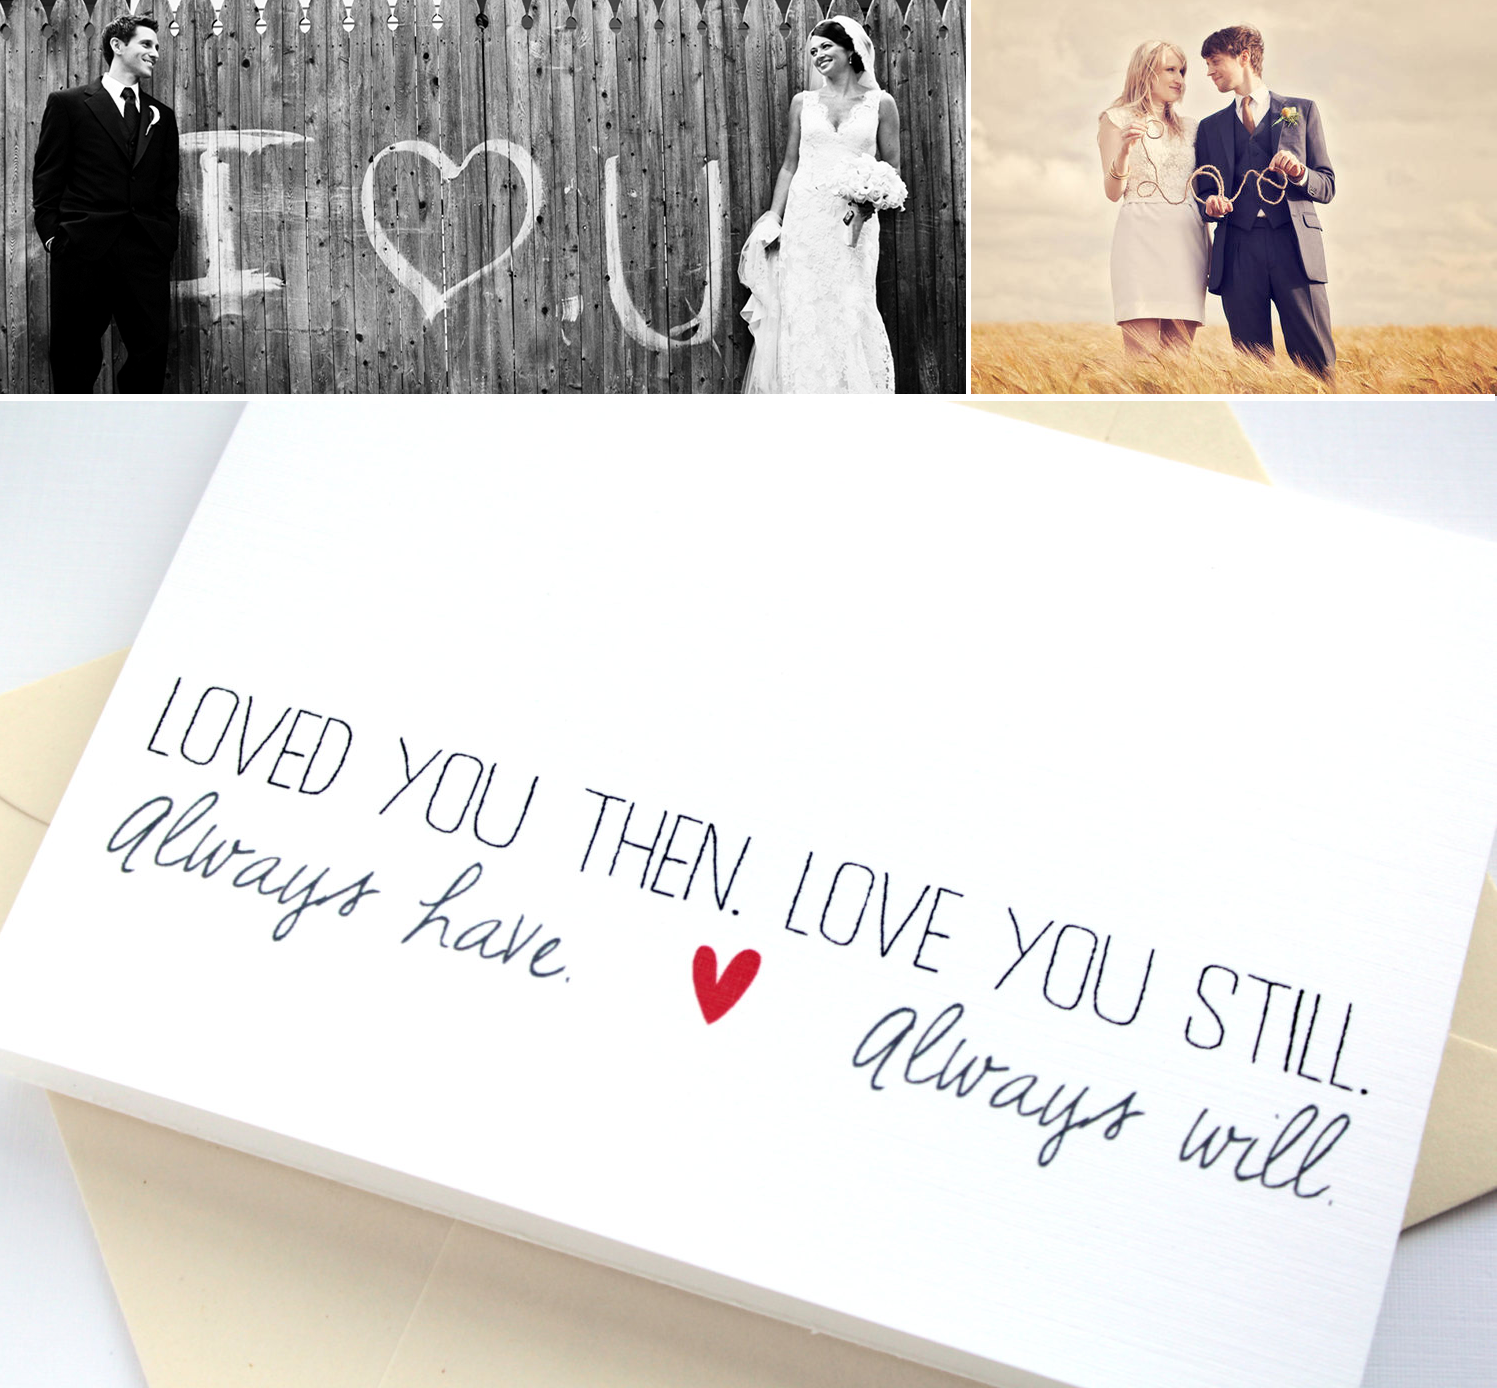 Wedding-ideas-why-i-love-you.original